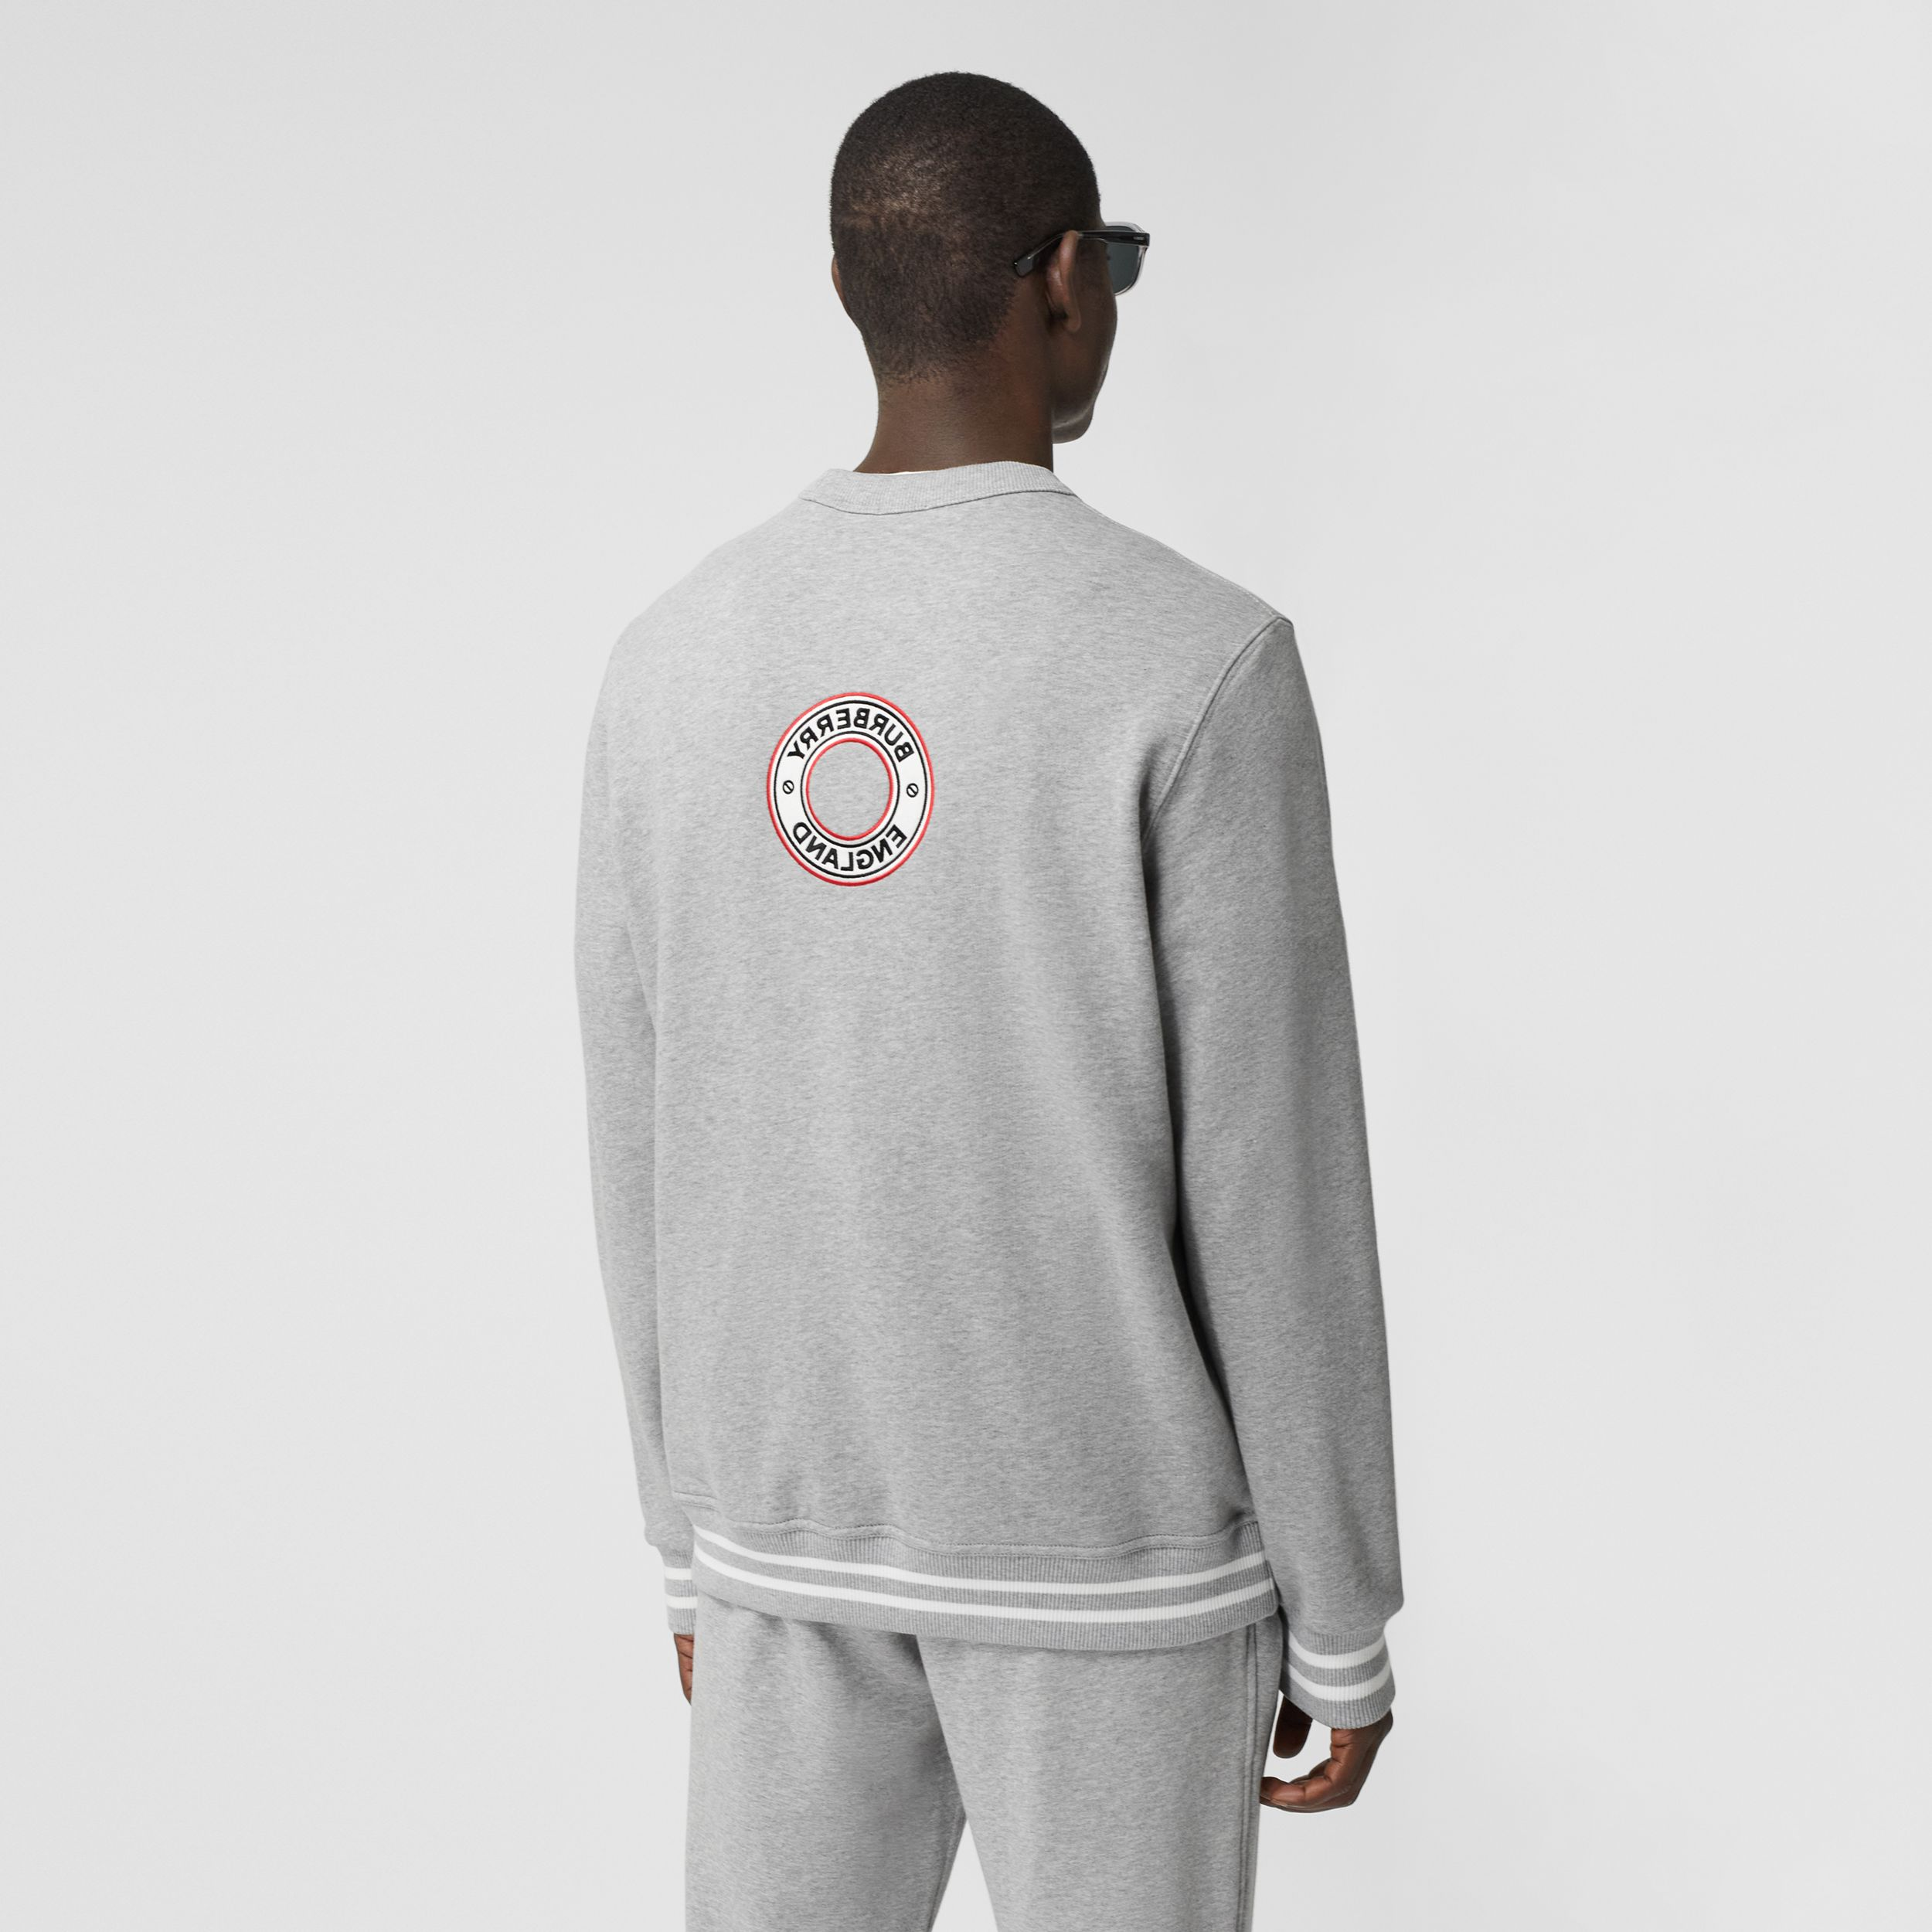 Logo Graphic Appliqué Cotton Sweatshirt in Pale Grey Melange - Men | Burberry - 3